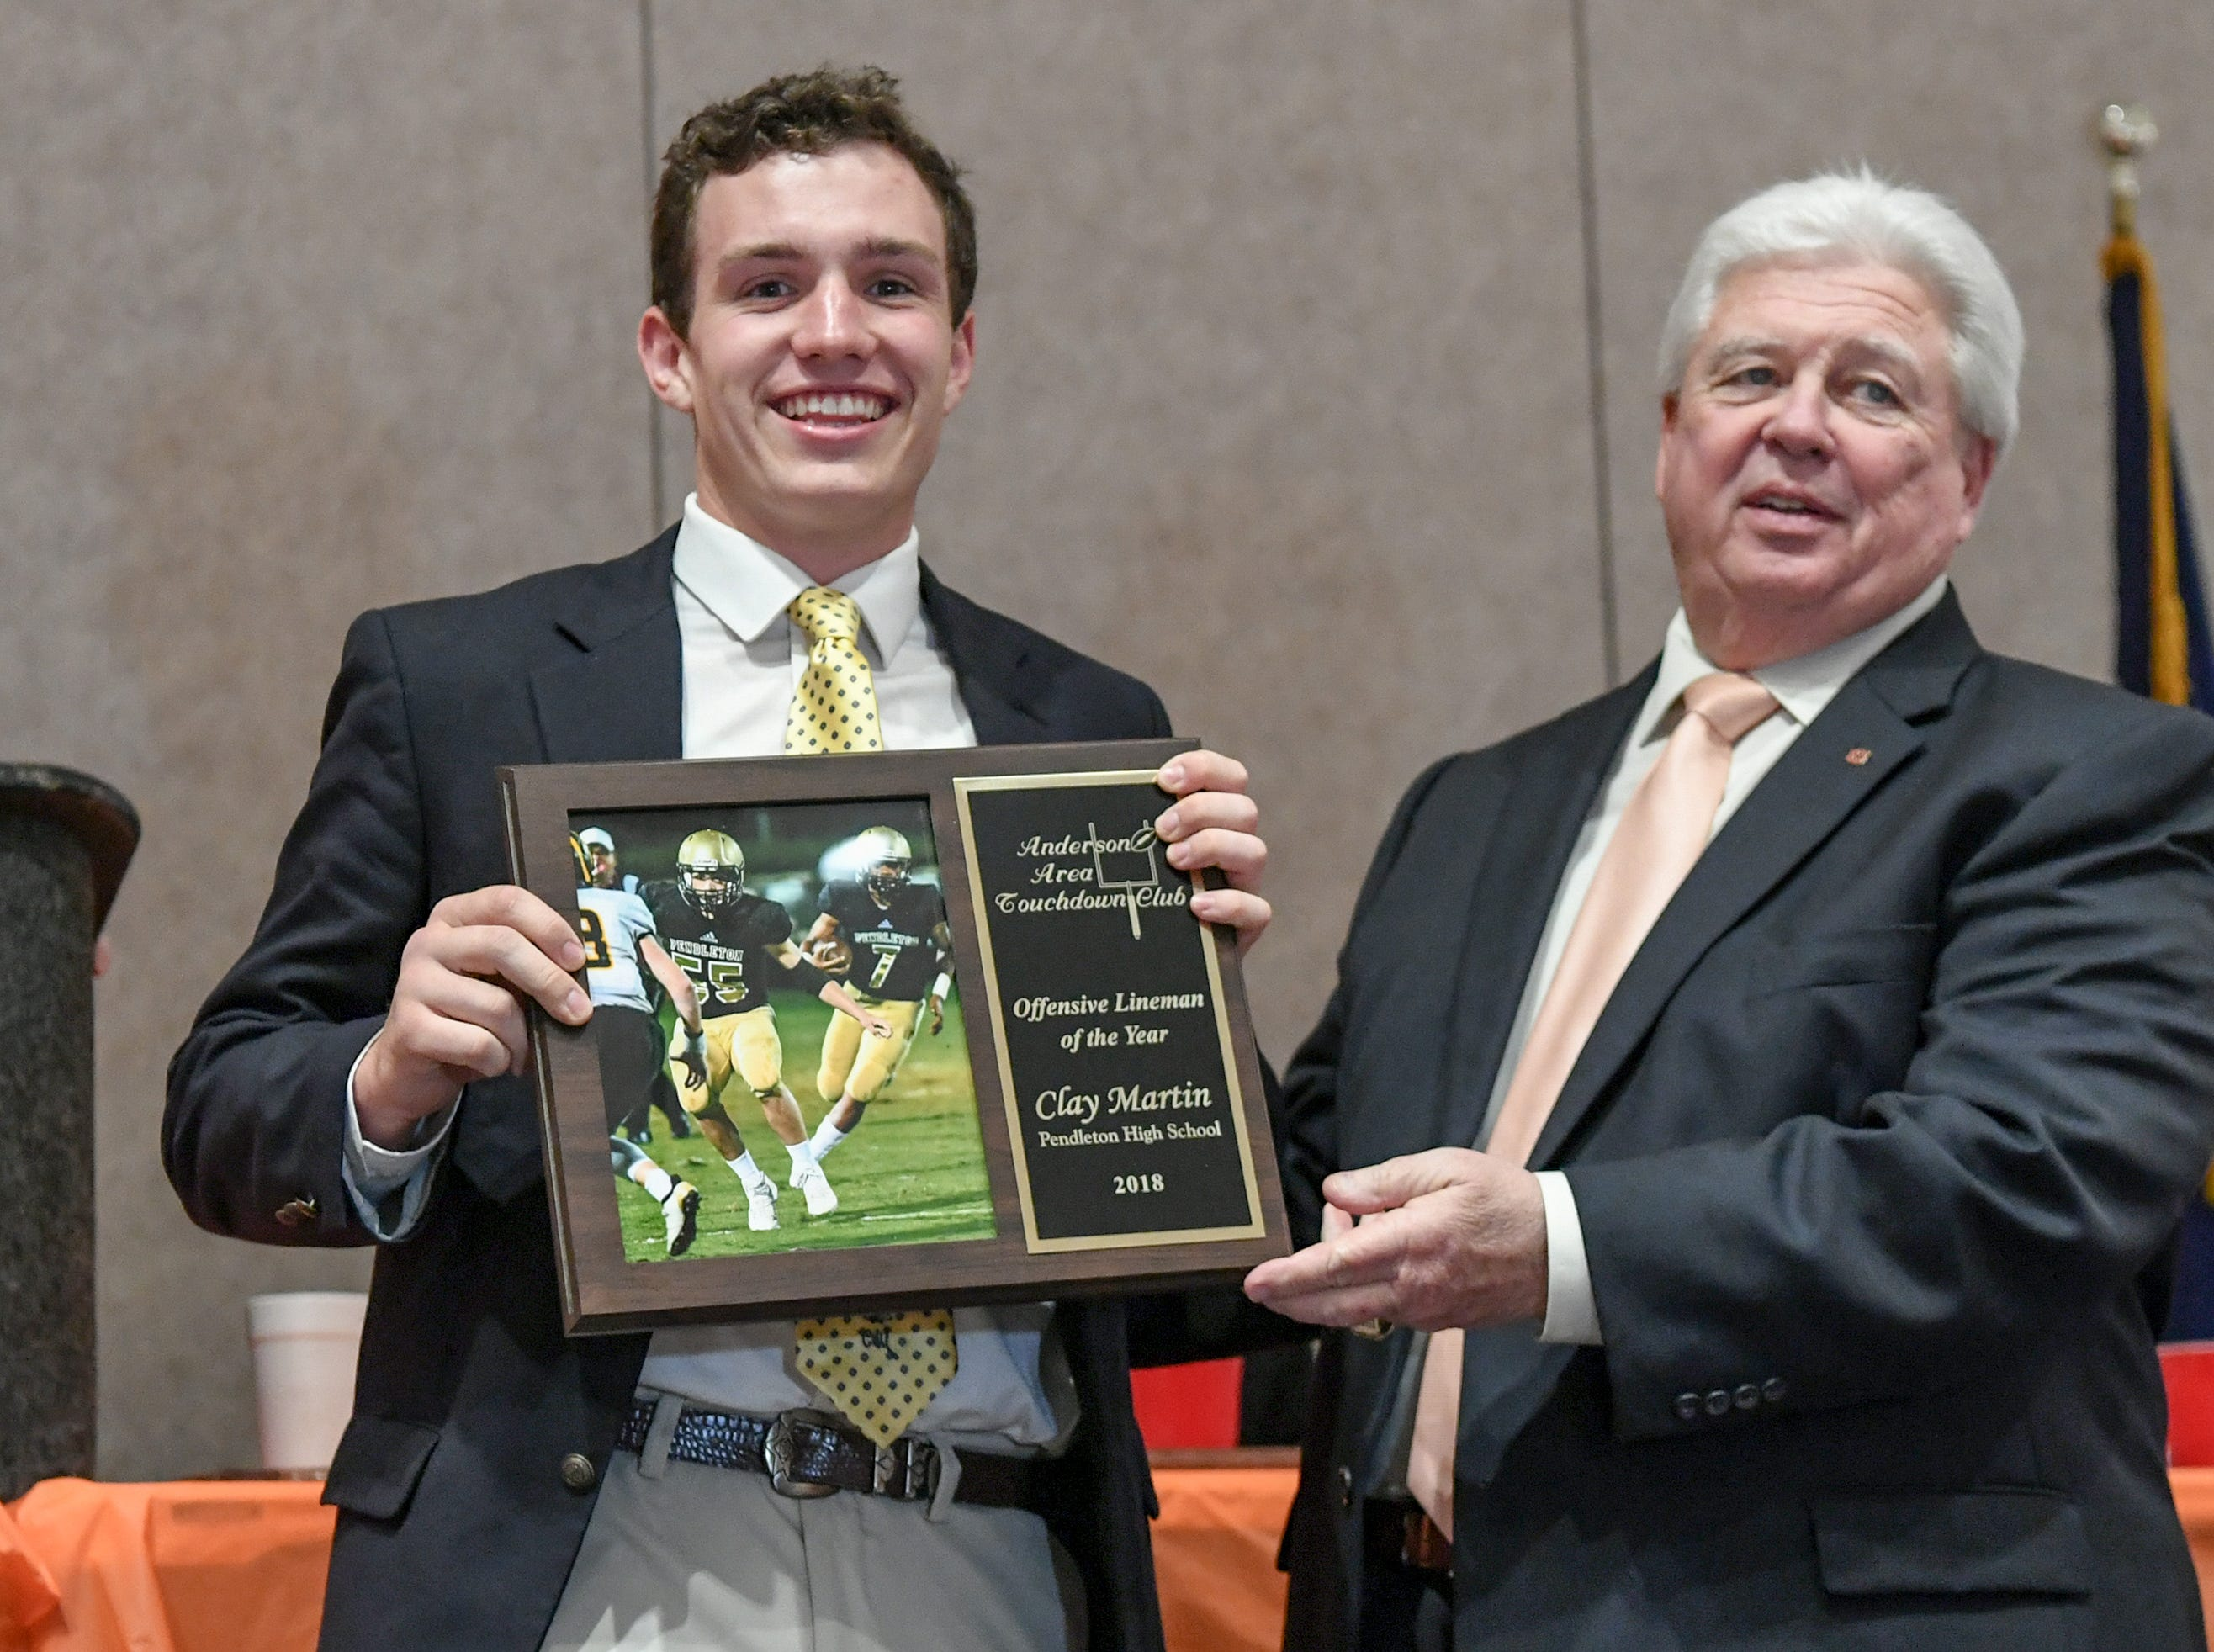 during the Anderson Area Touchdown Club Annual Awards Banquet at the Anderson County Civic Center Monday, April 8th, 2019. Awards were given to the Players of the Year and the Coach of the Year from the eight Anderson County high schools. The club honored former Belton-Honea Path player Kendall Joseph who was part of two National Championship Clemson football teams.